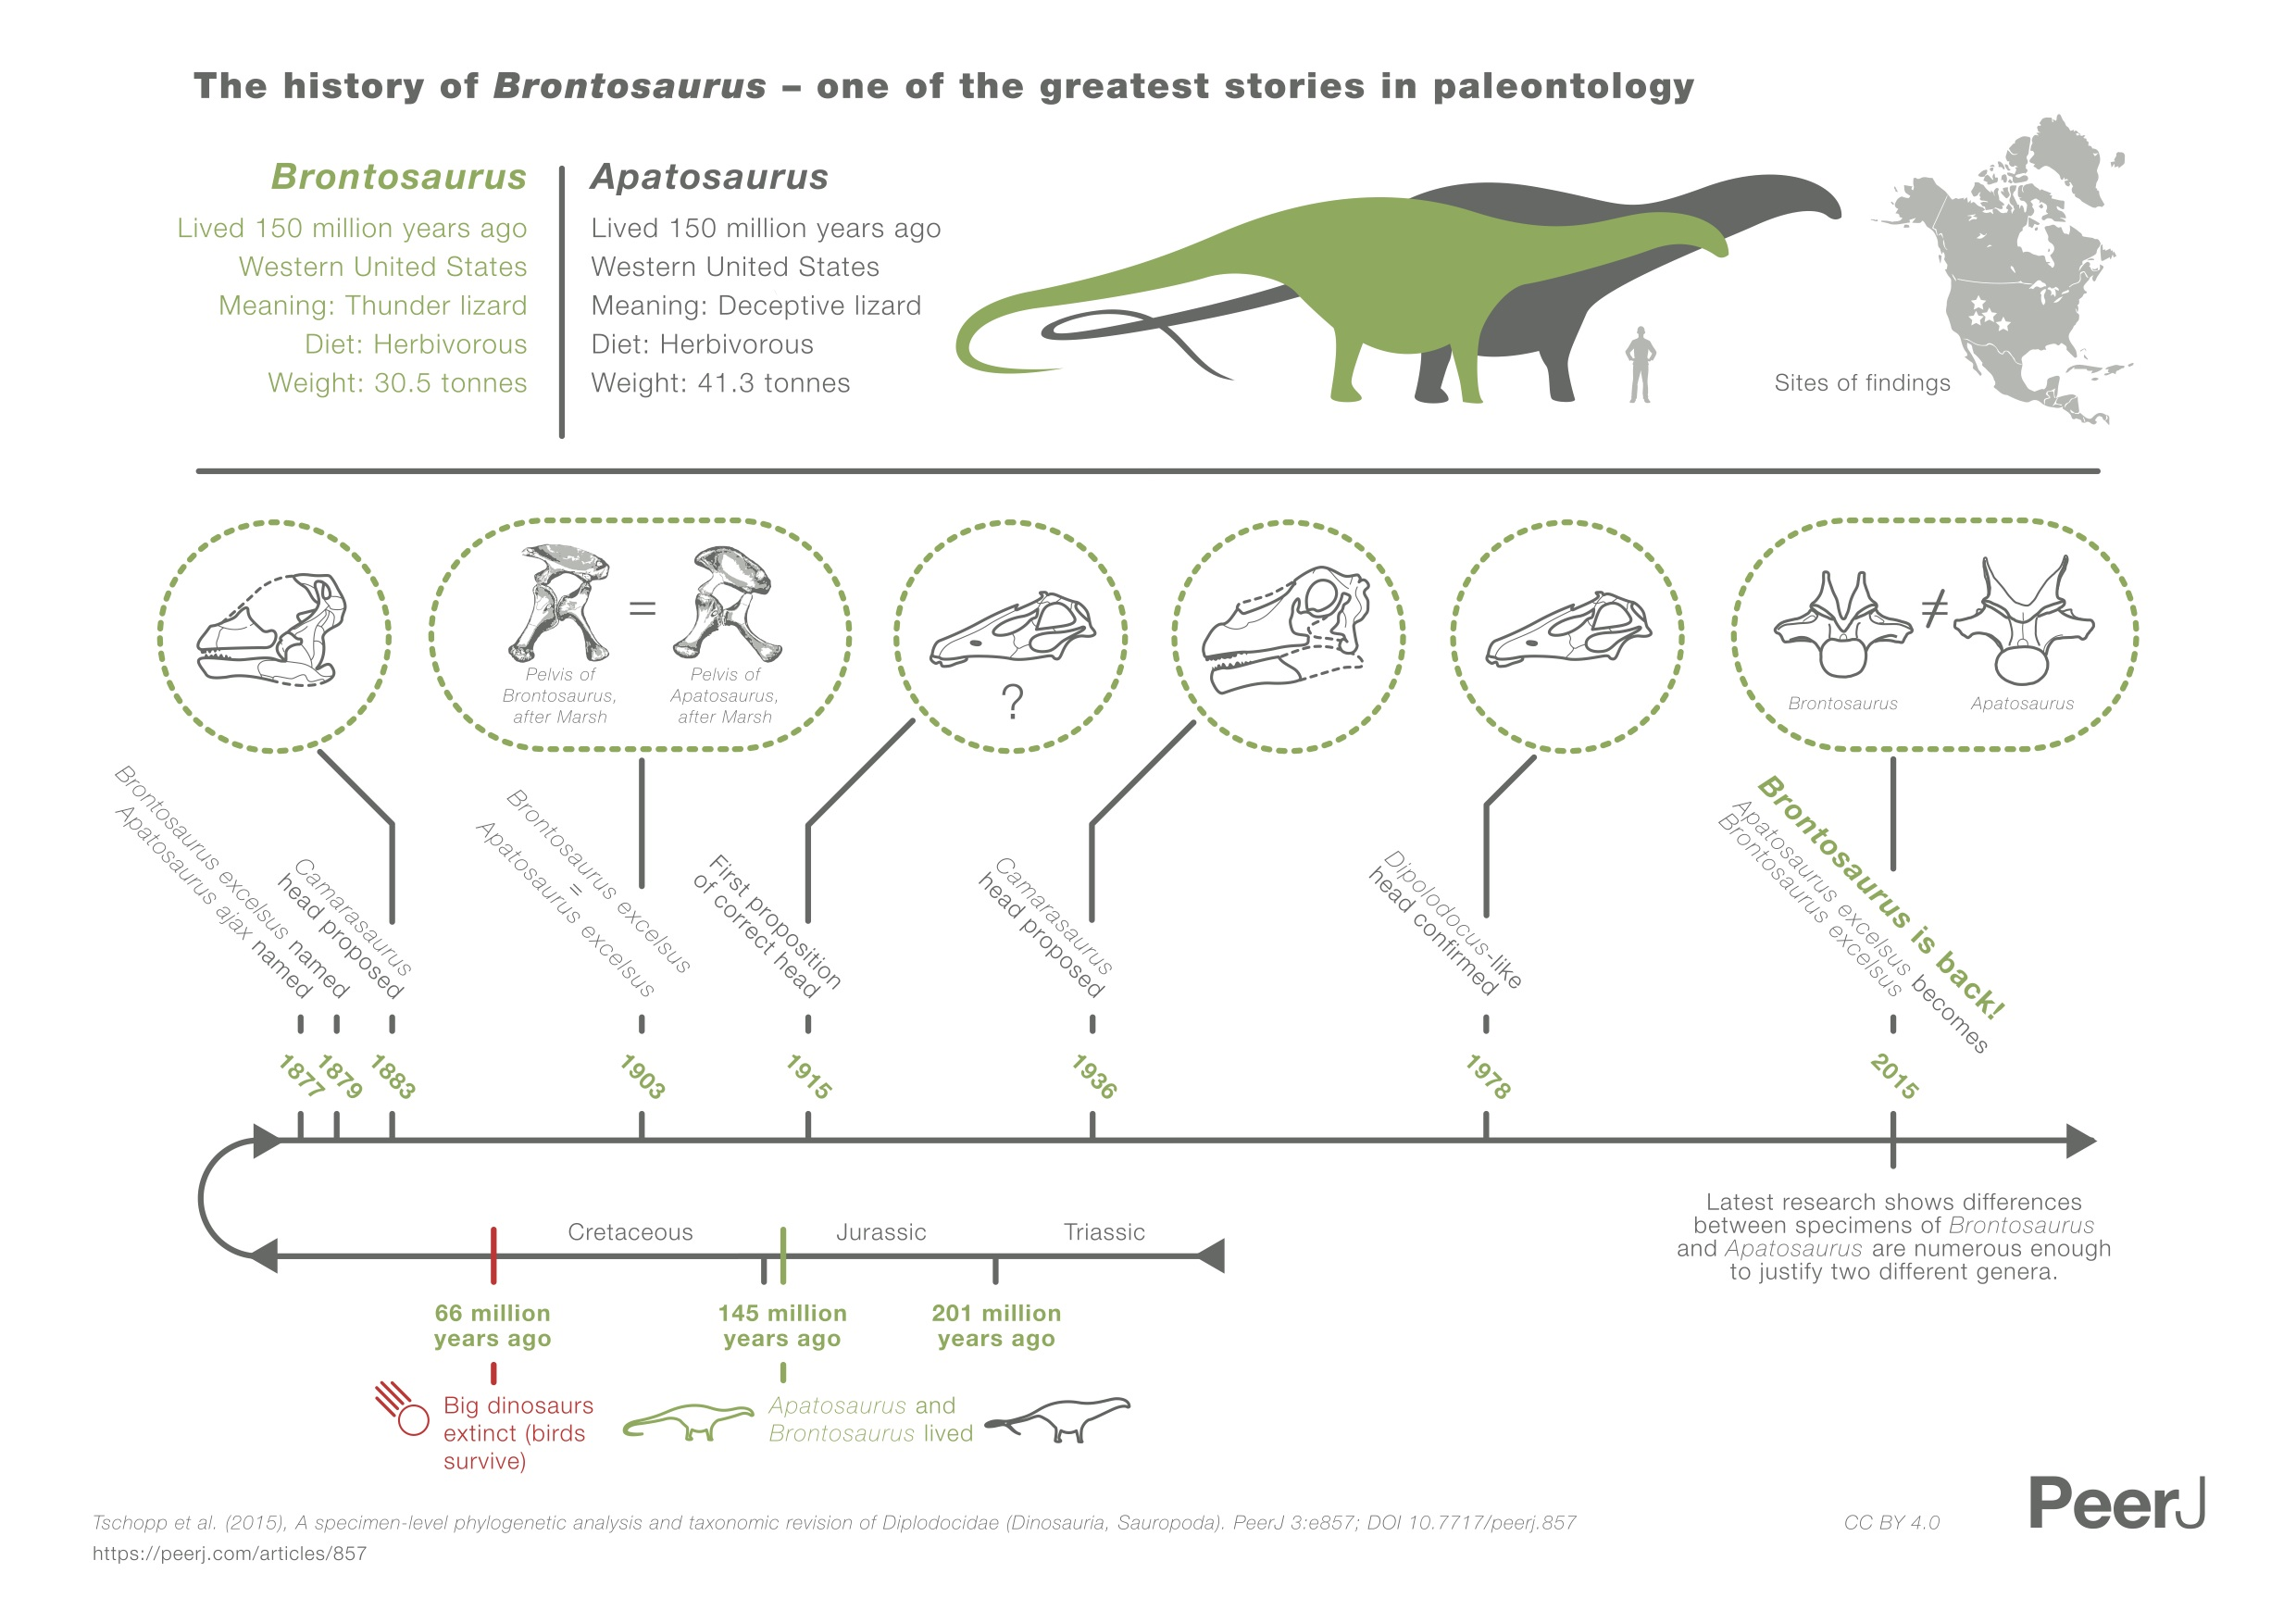 The history of Brontosaurus, as diagrammed by Tschopp et al in their 2015 paper.